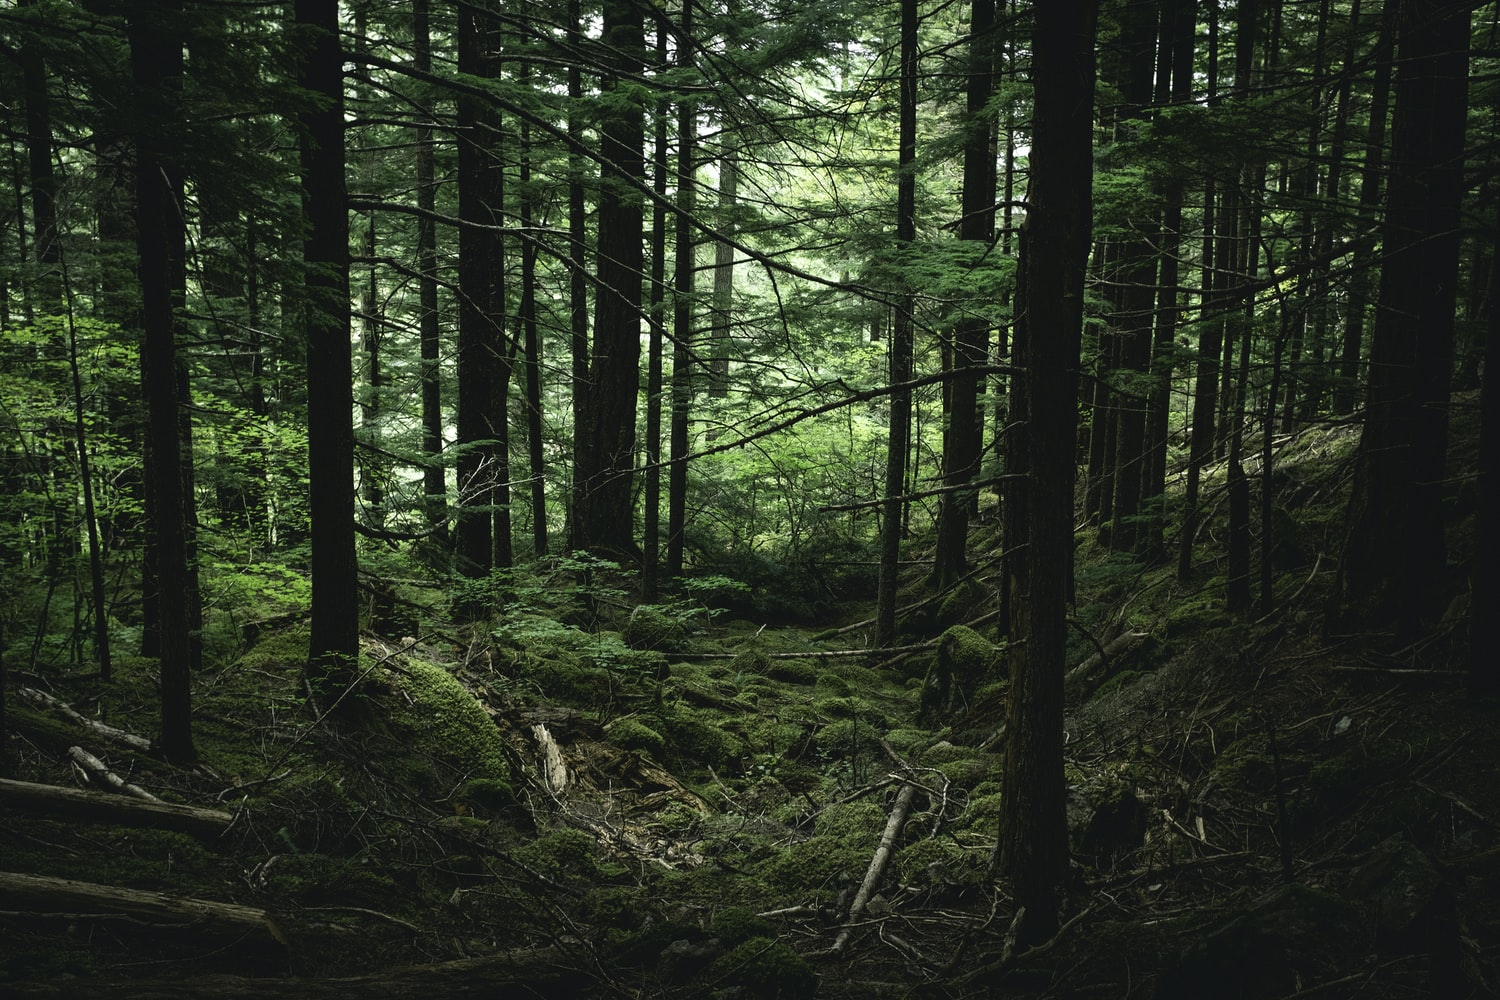 Finding the Mother Tree Book by Suzanne Simard will be available in May 2021 from Penguin Random House at all major booksellers. Picture of tall trees in forest.